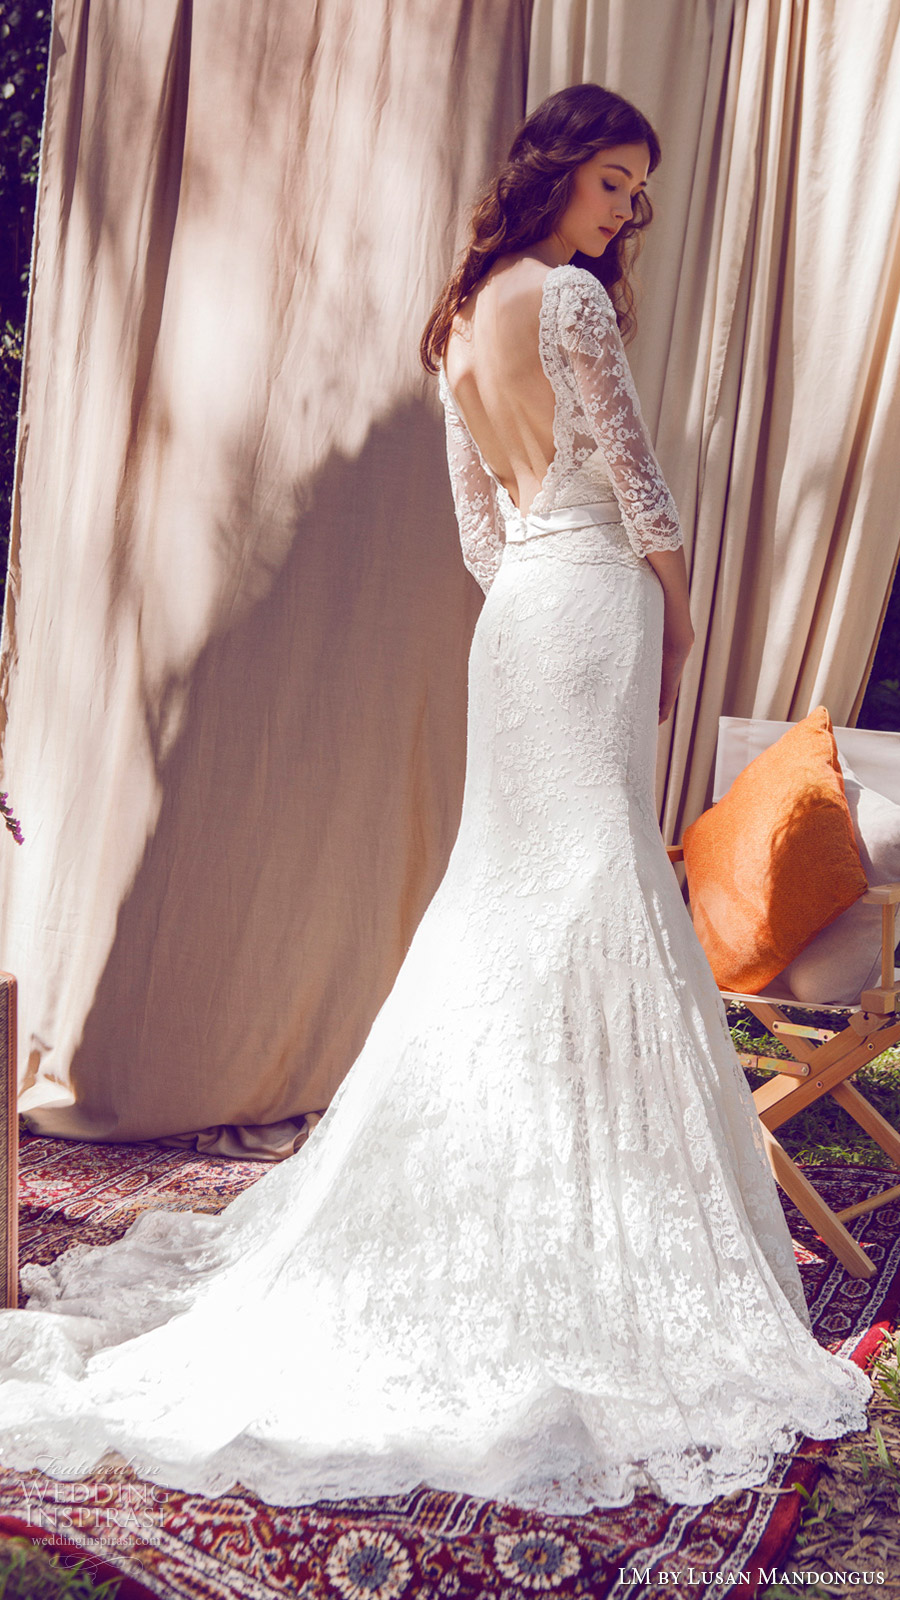 lm lusan mandongus bridal 2017 illusion bateau neck 3 quarter sleees lace trumpet wedding dress (lm3091b) bv open back train